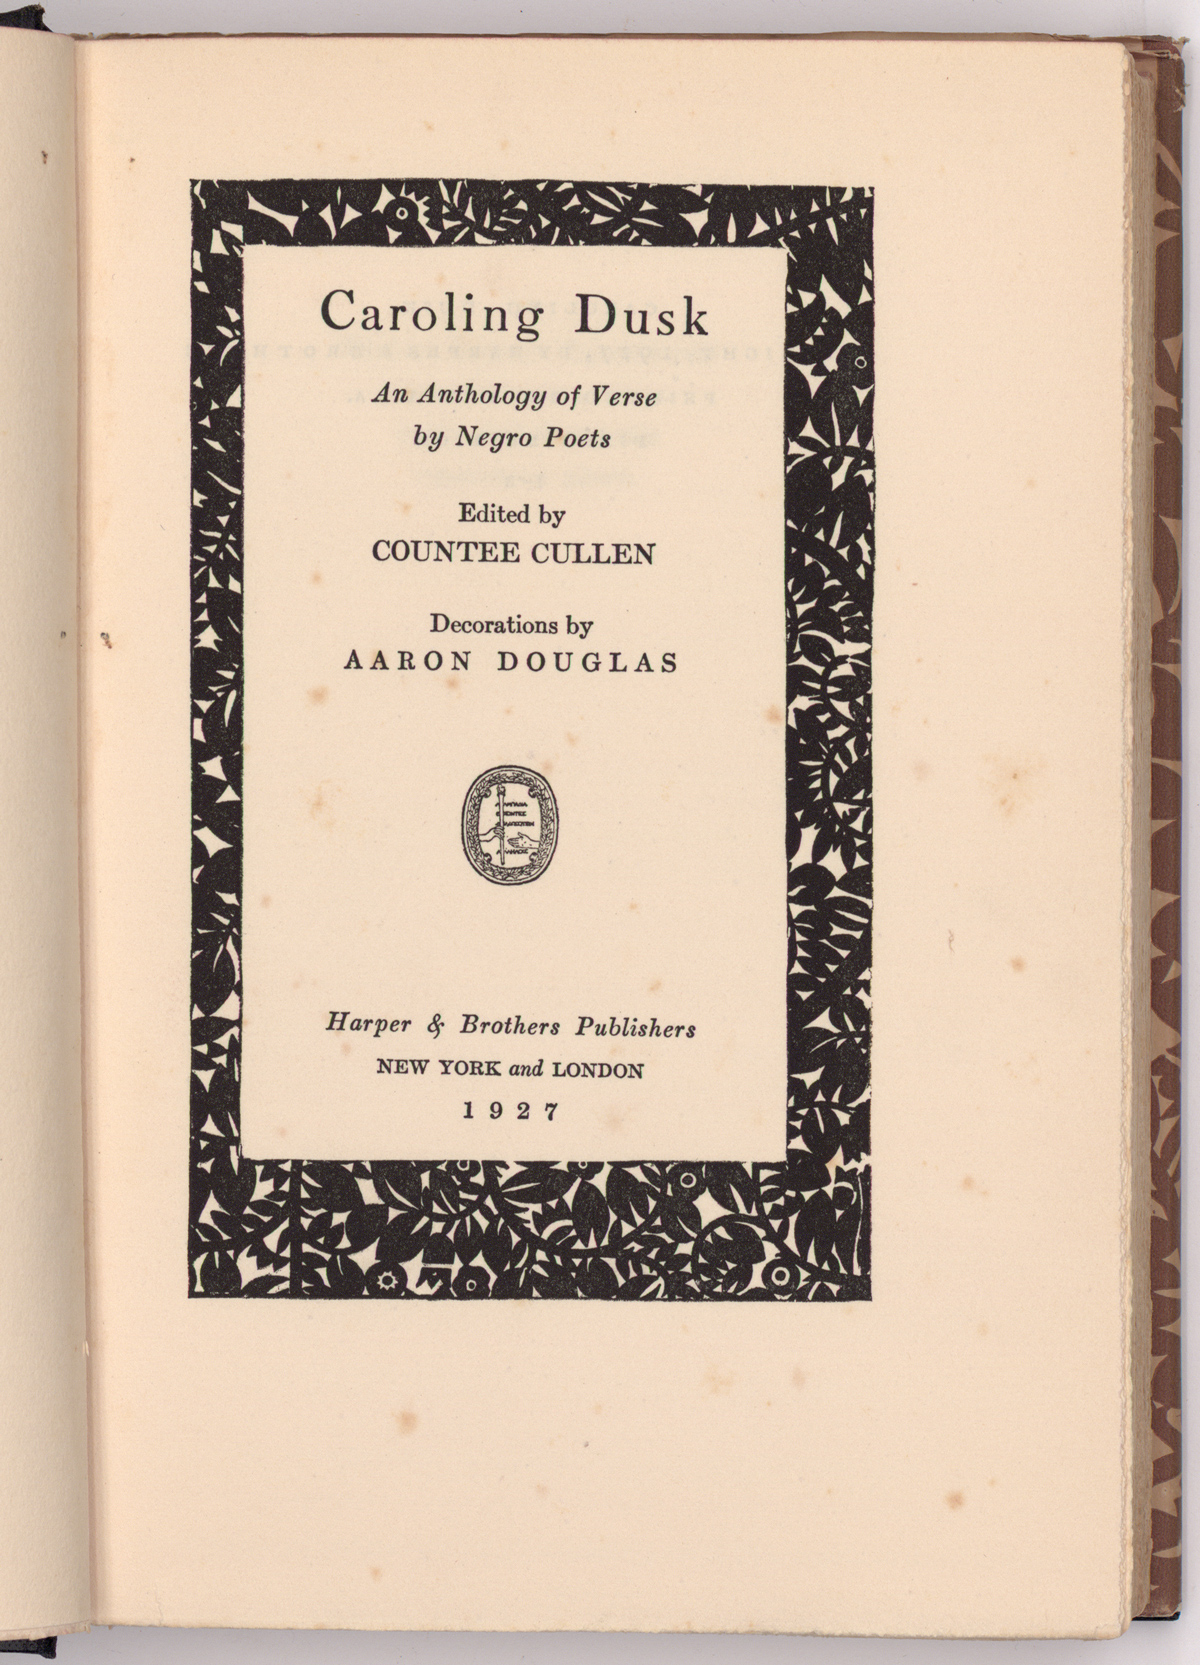 The title page of Caroling Dusk, An Anthology of Verse by Negro Poets.